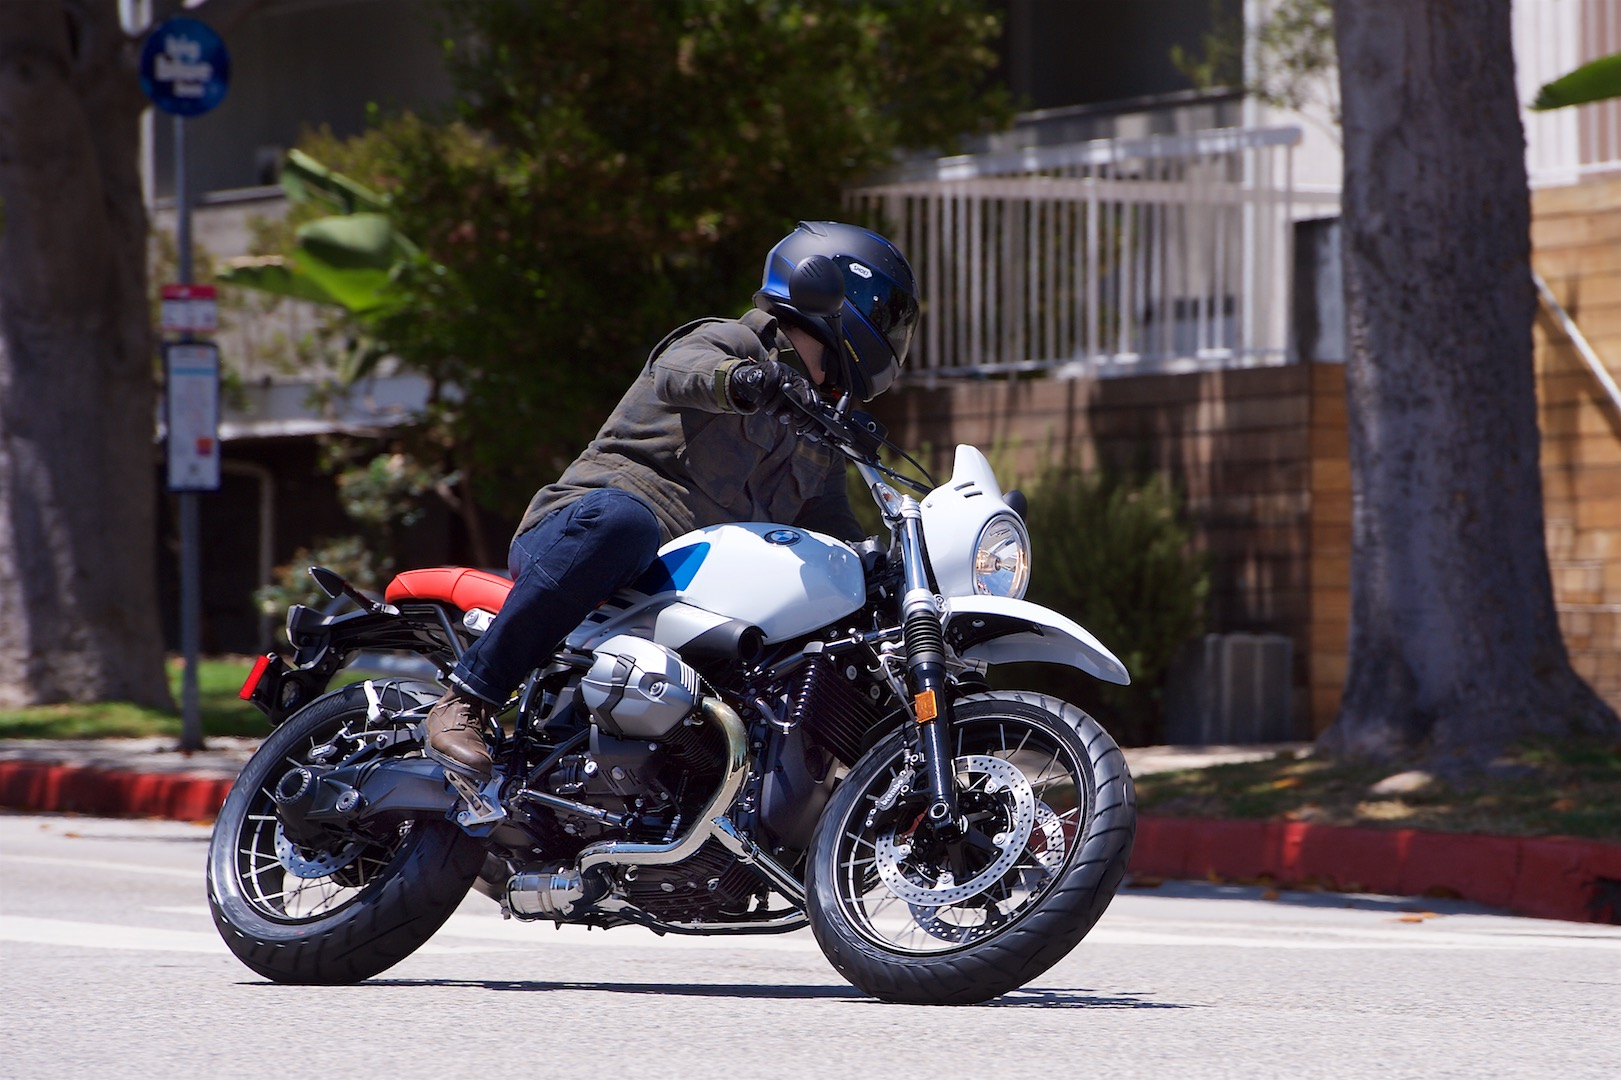 2018 BMW R nineT Urban G/S Review - city test